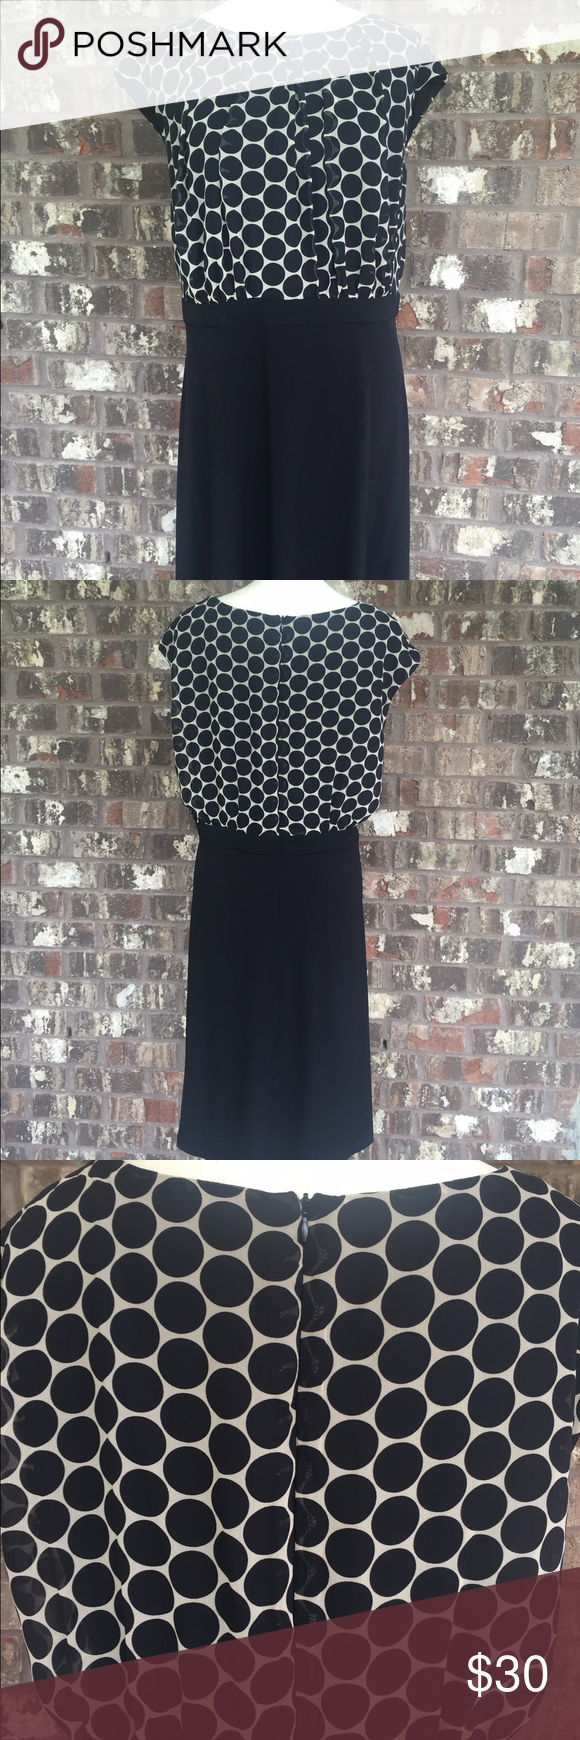 Great black and cream dress from Connected Apparel | Black cream